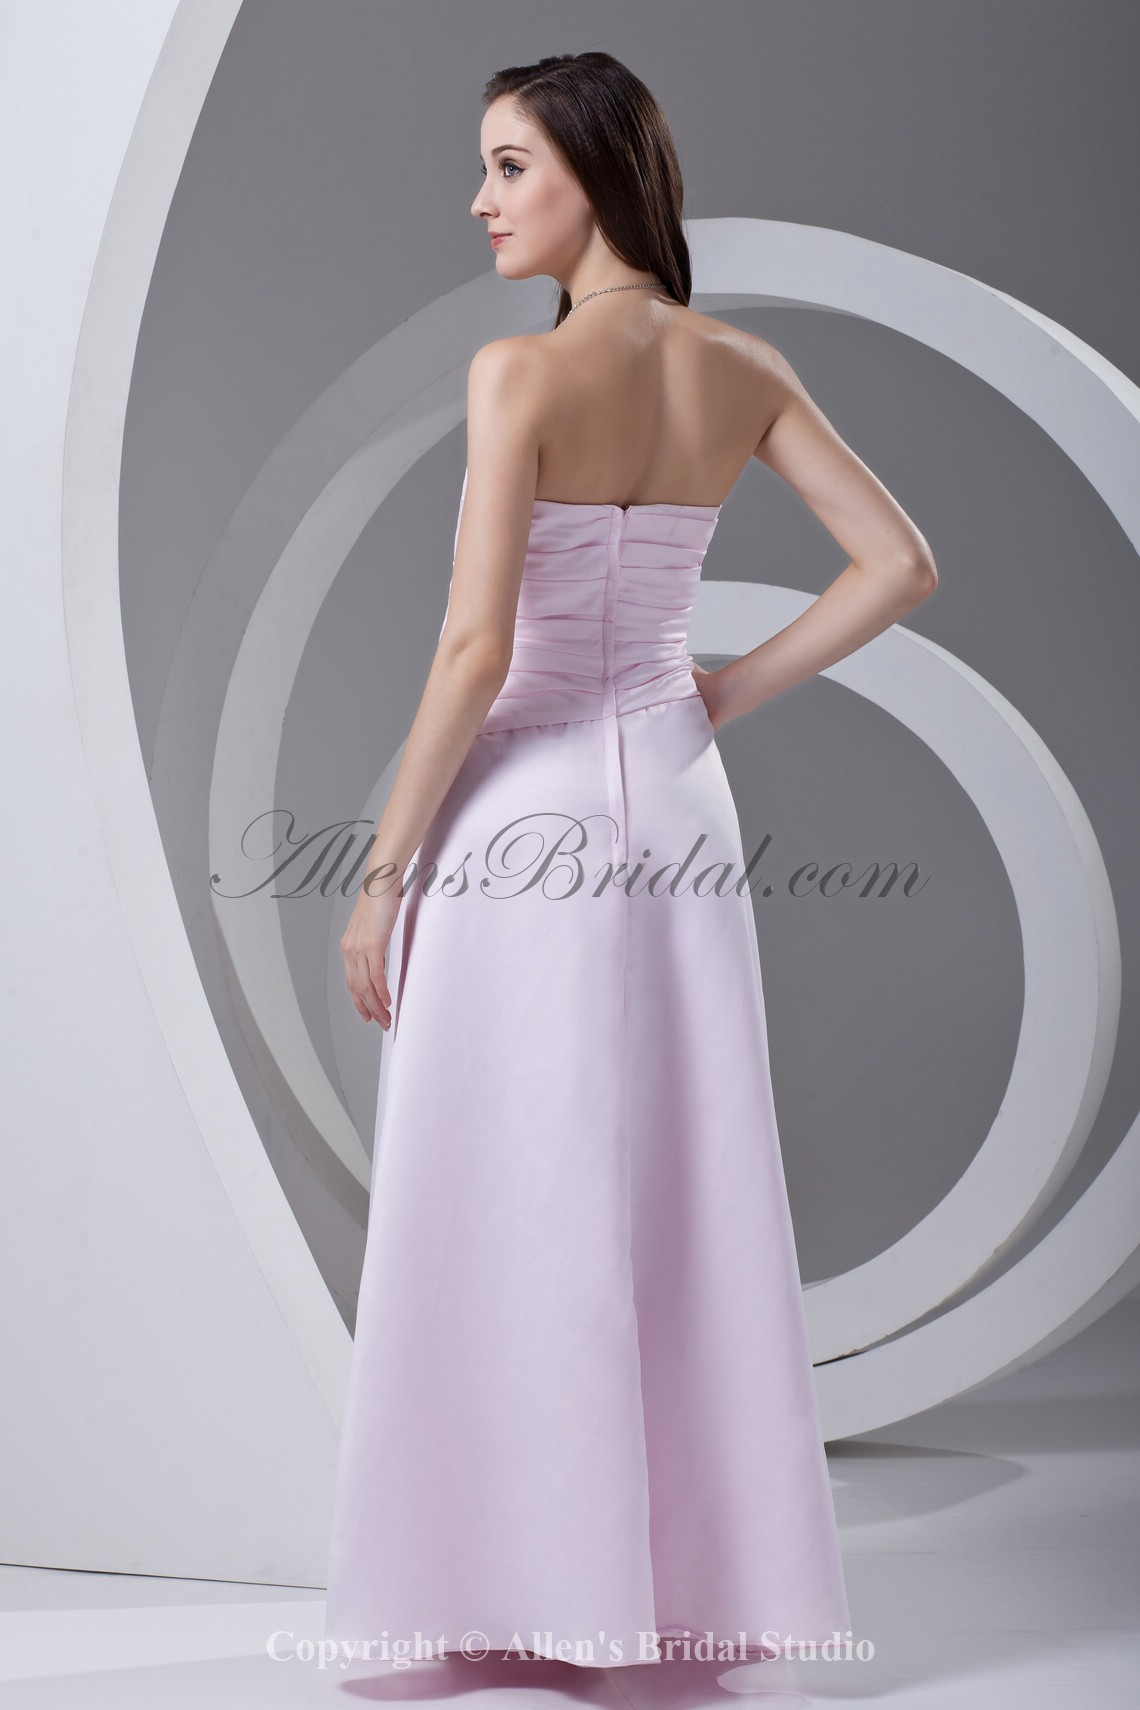 /356-2849/satin-strapless-neckline-a-line-floor-length-directionally-ruched-prom-dress.jpg